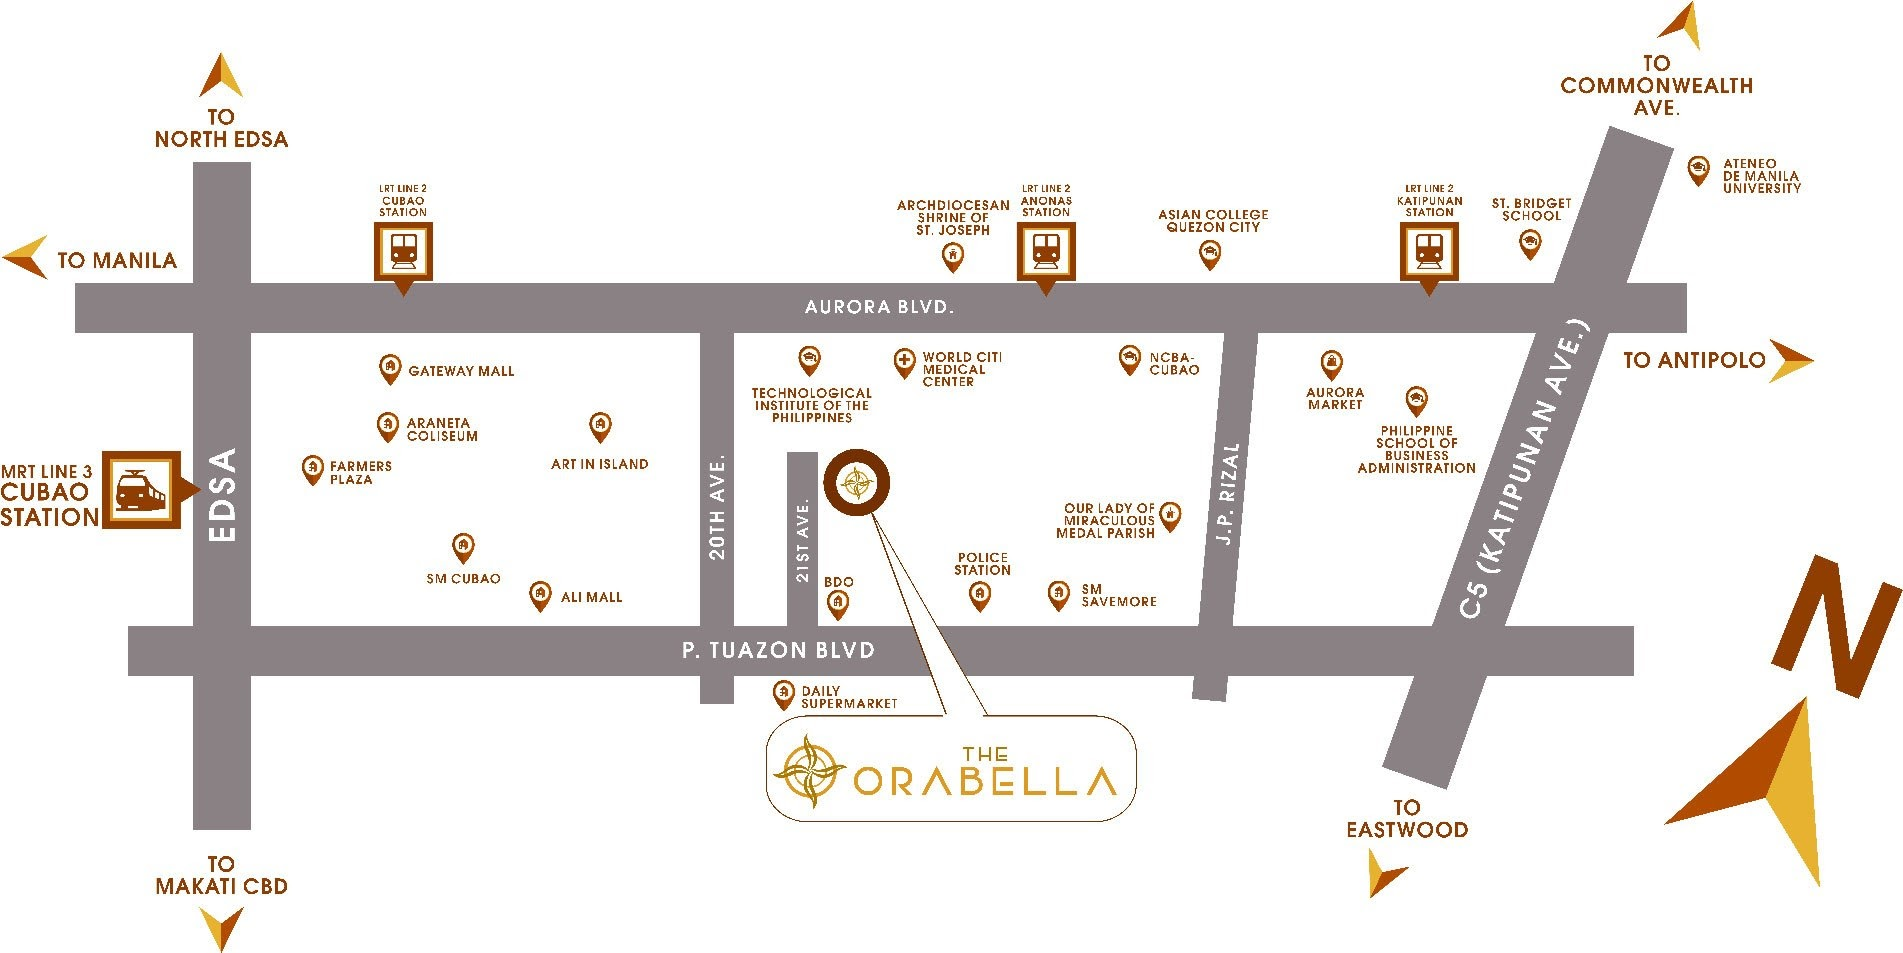 The Orabella, Quezon City location map